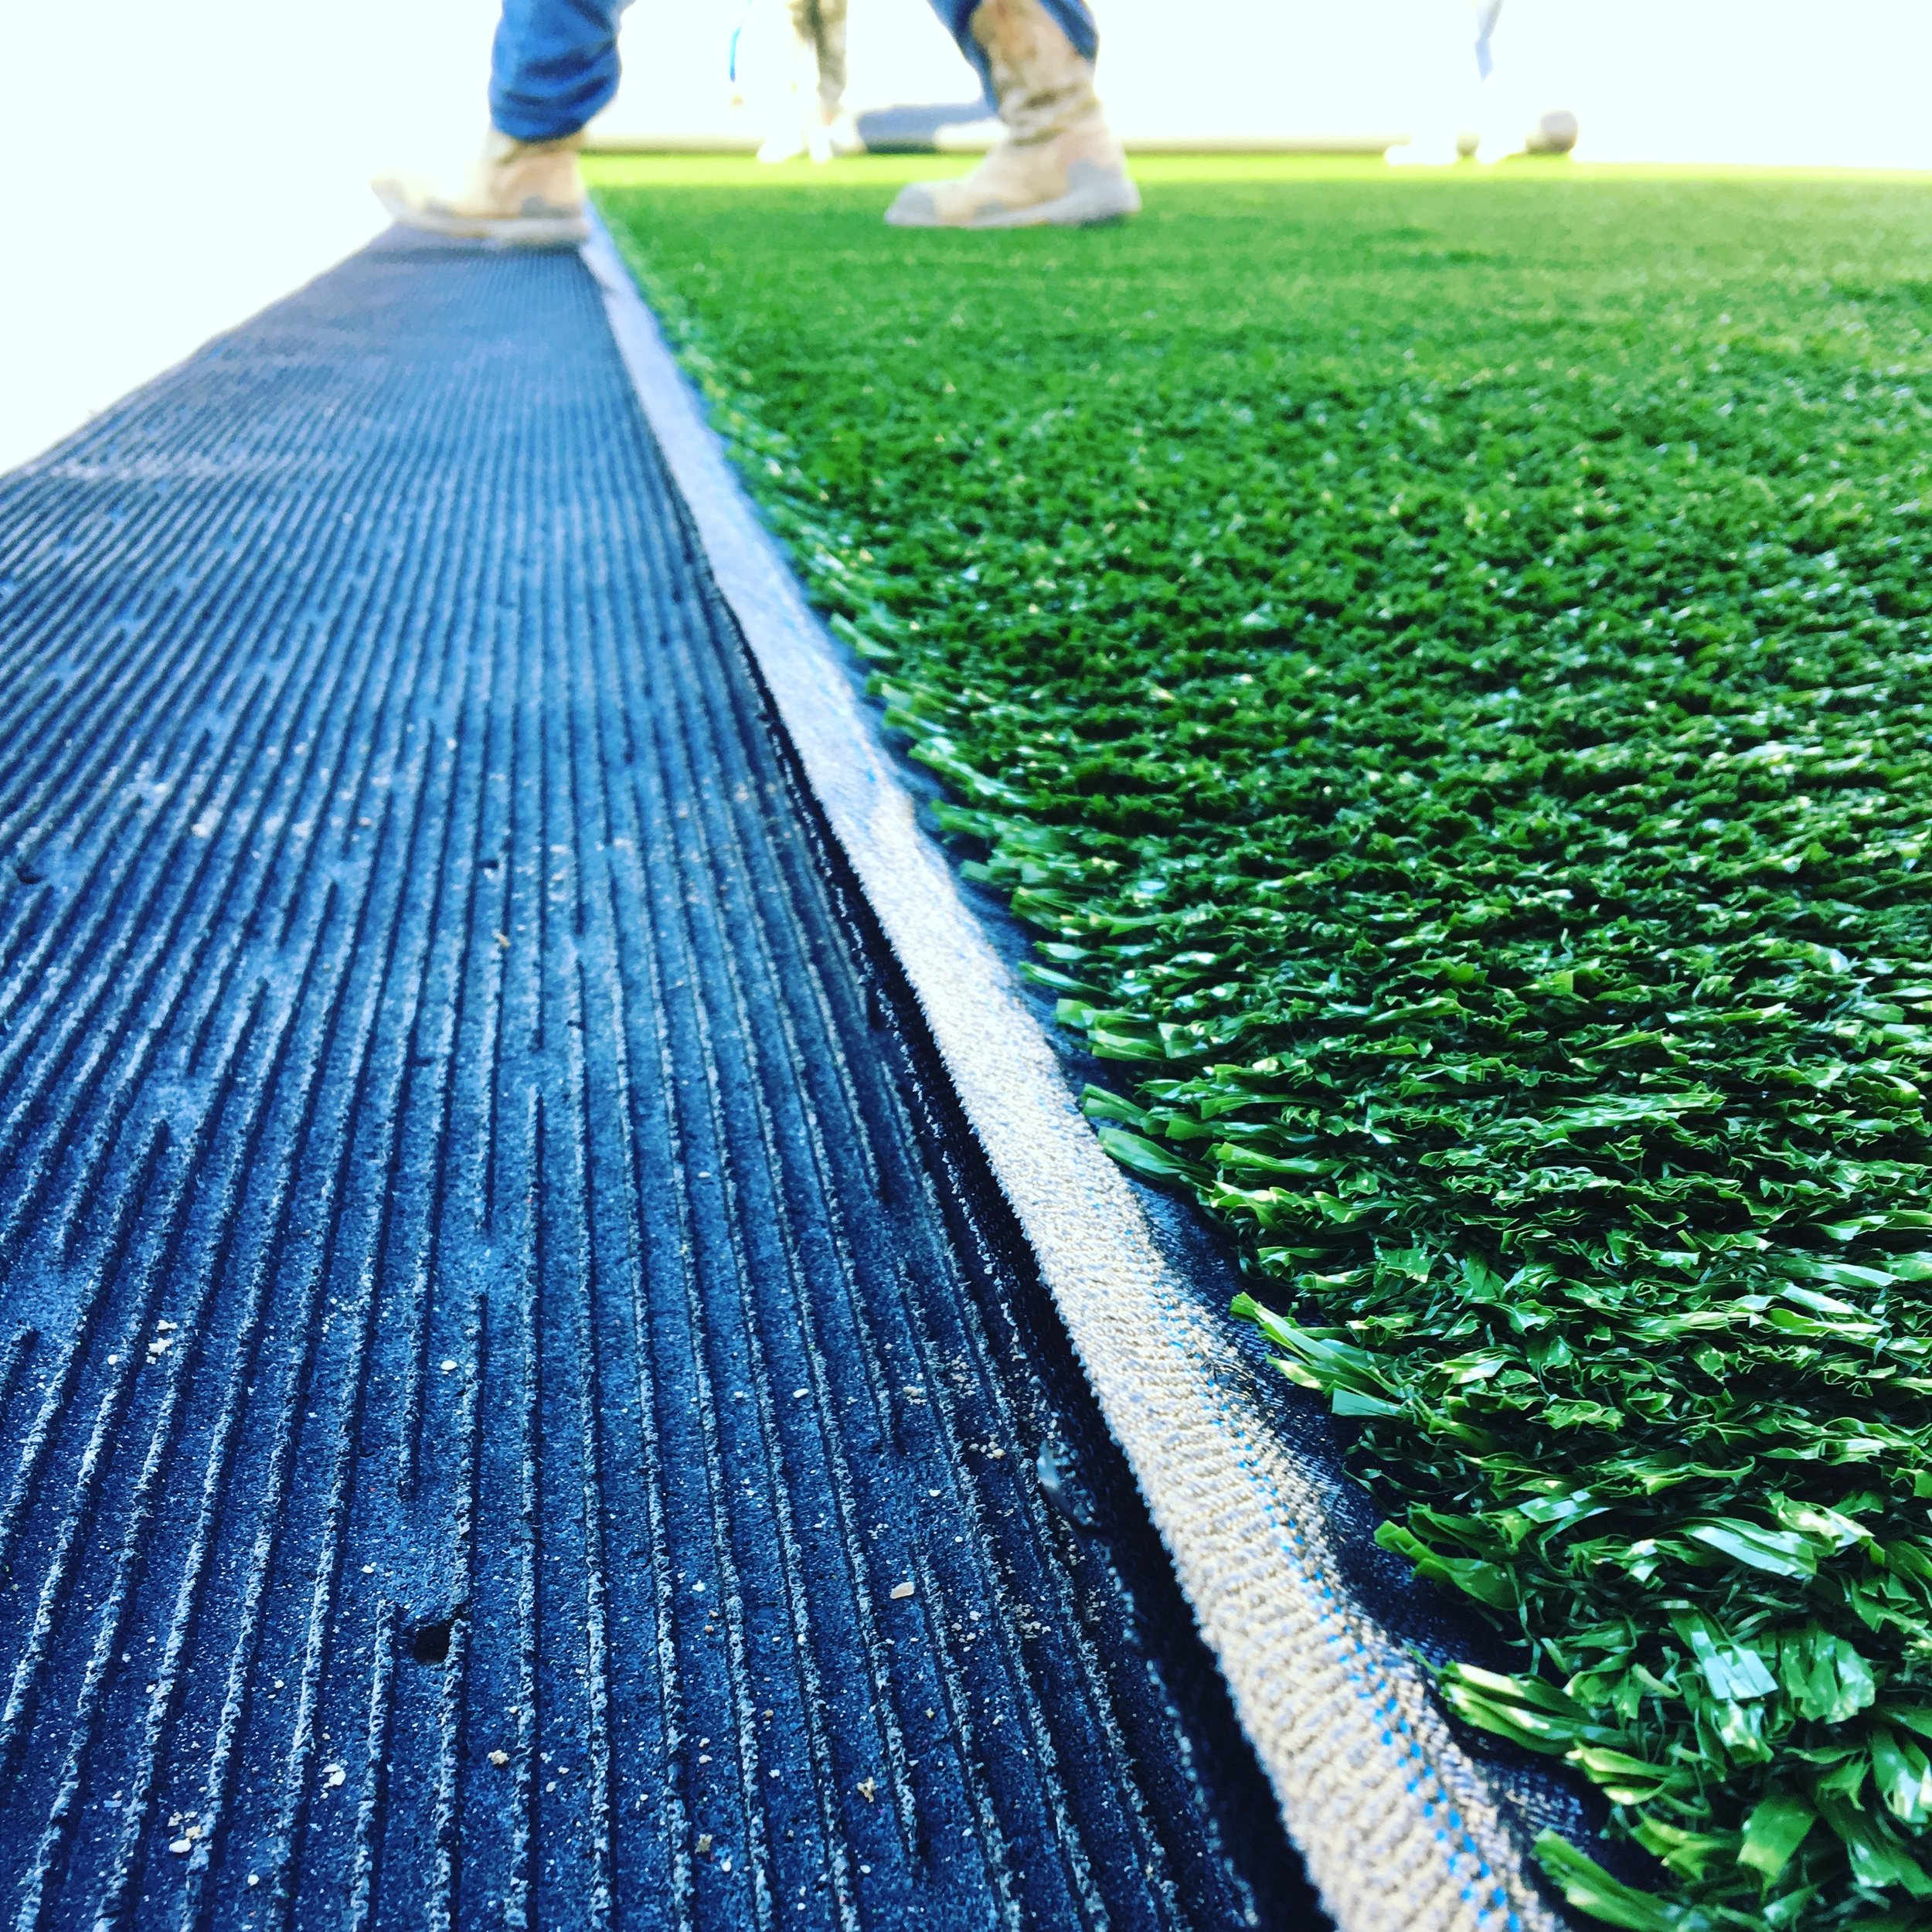 Resolving the challenges associated with drainage of synthetic turf